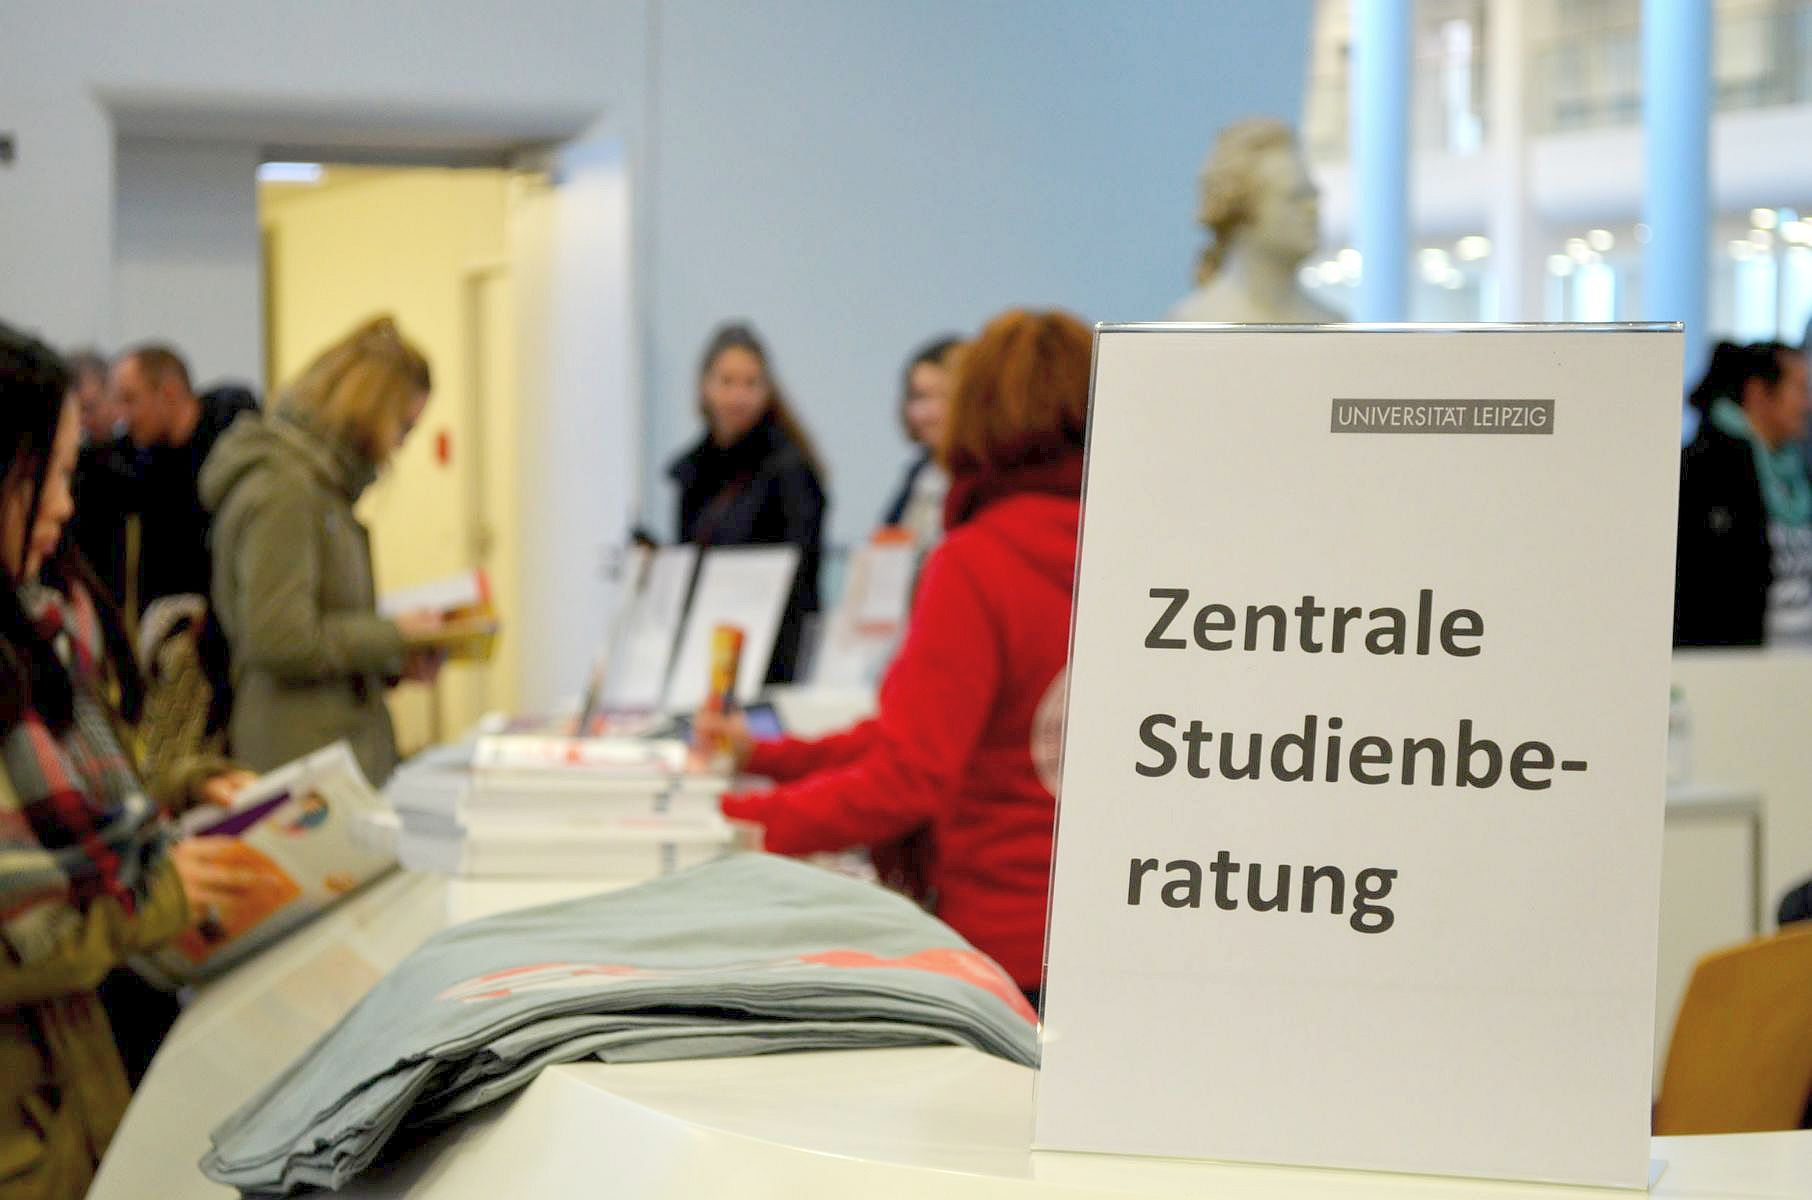 Uni leipzig dating